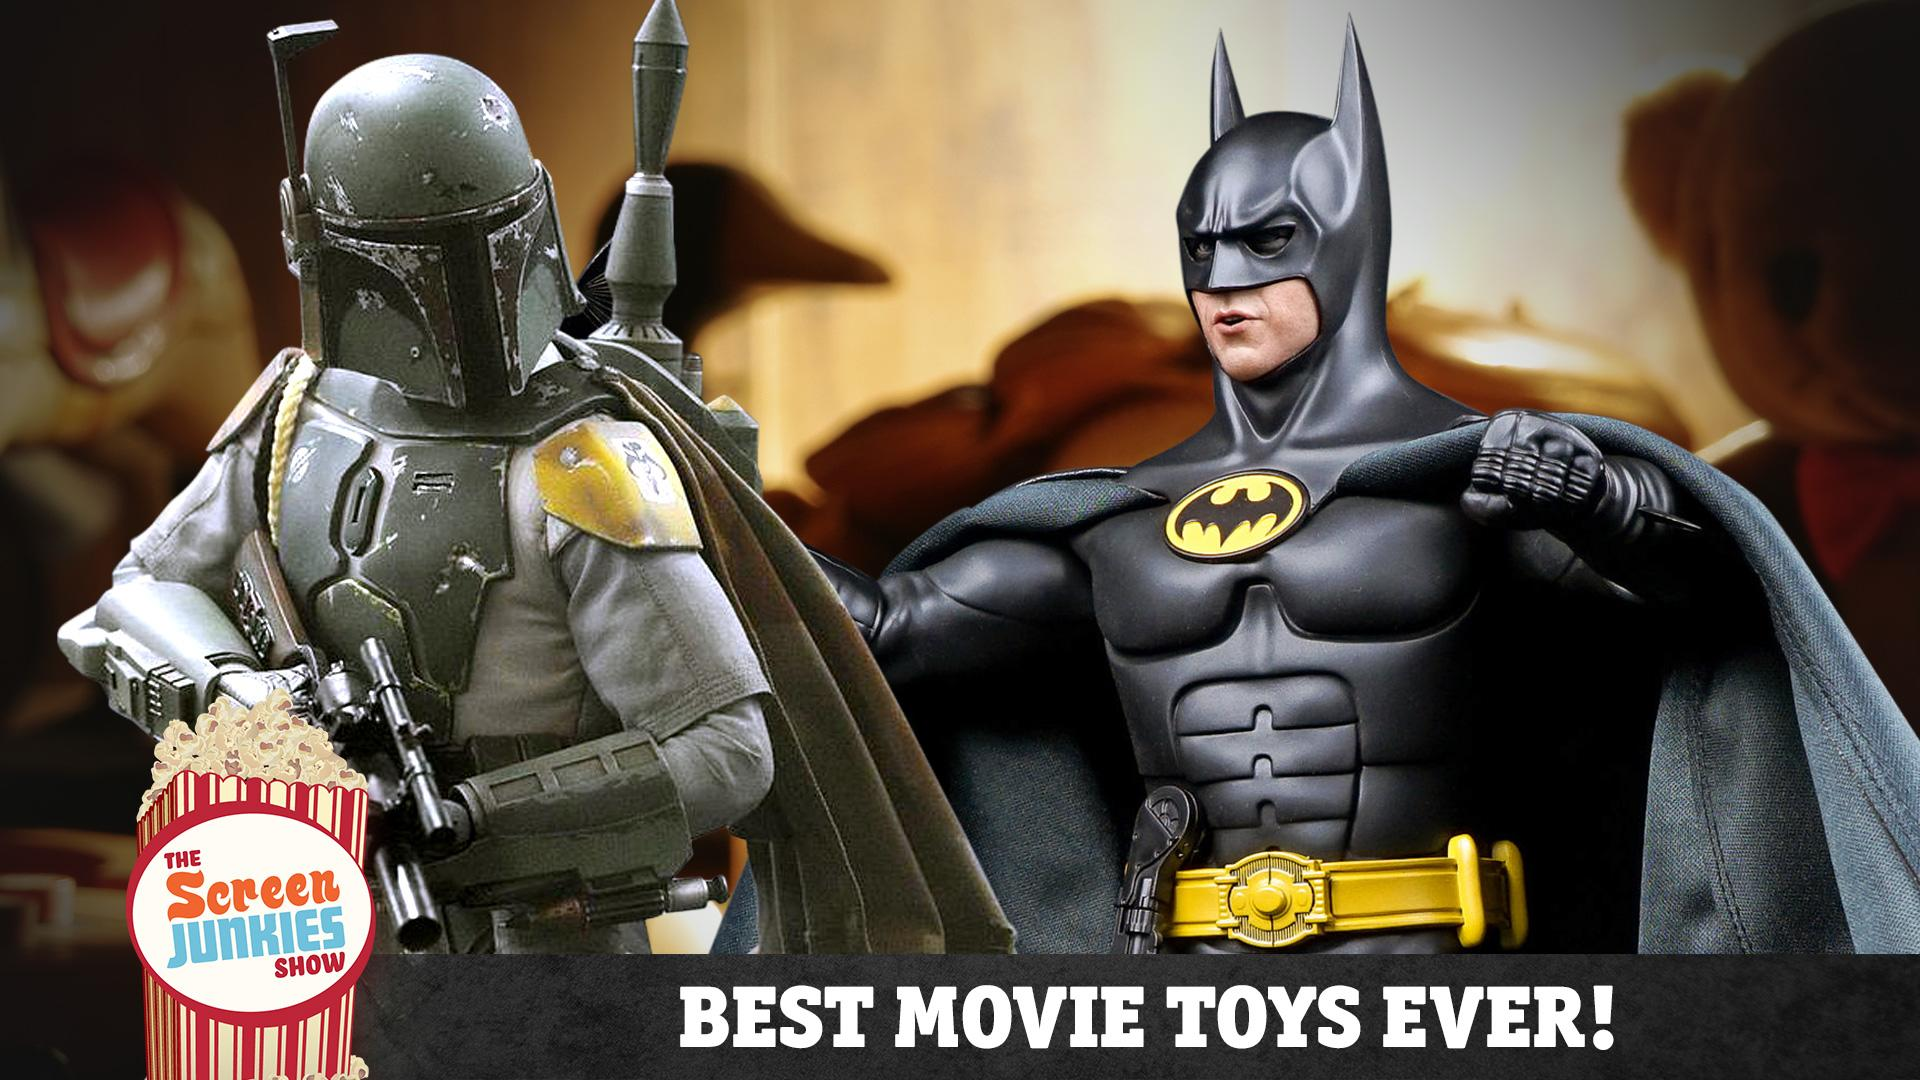 Best Toy Ever : The best movie toys ever video